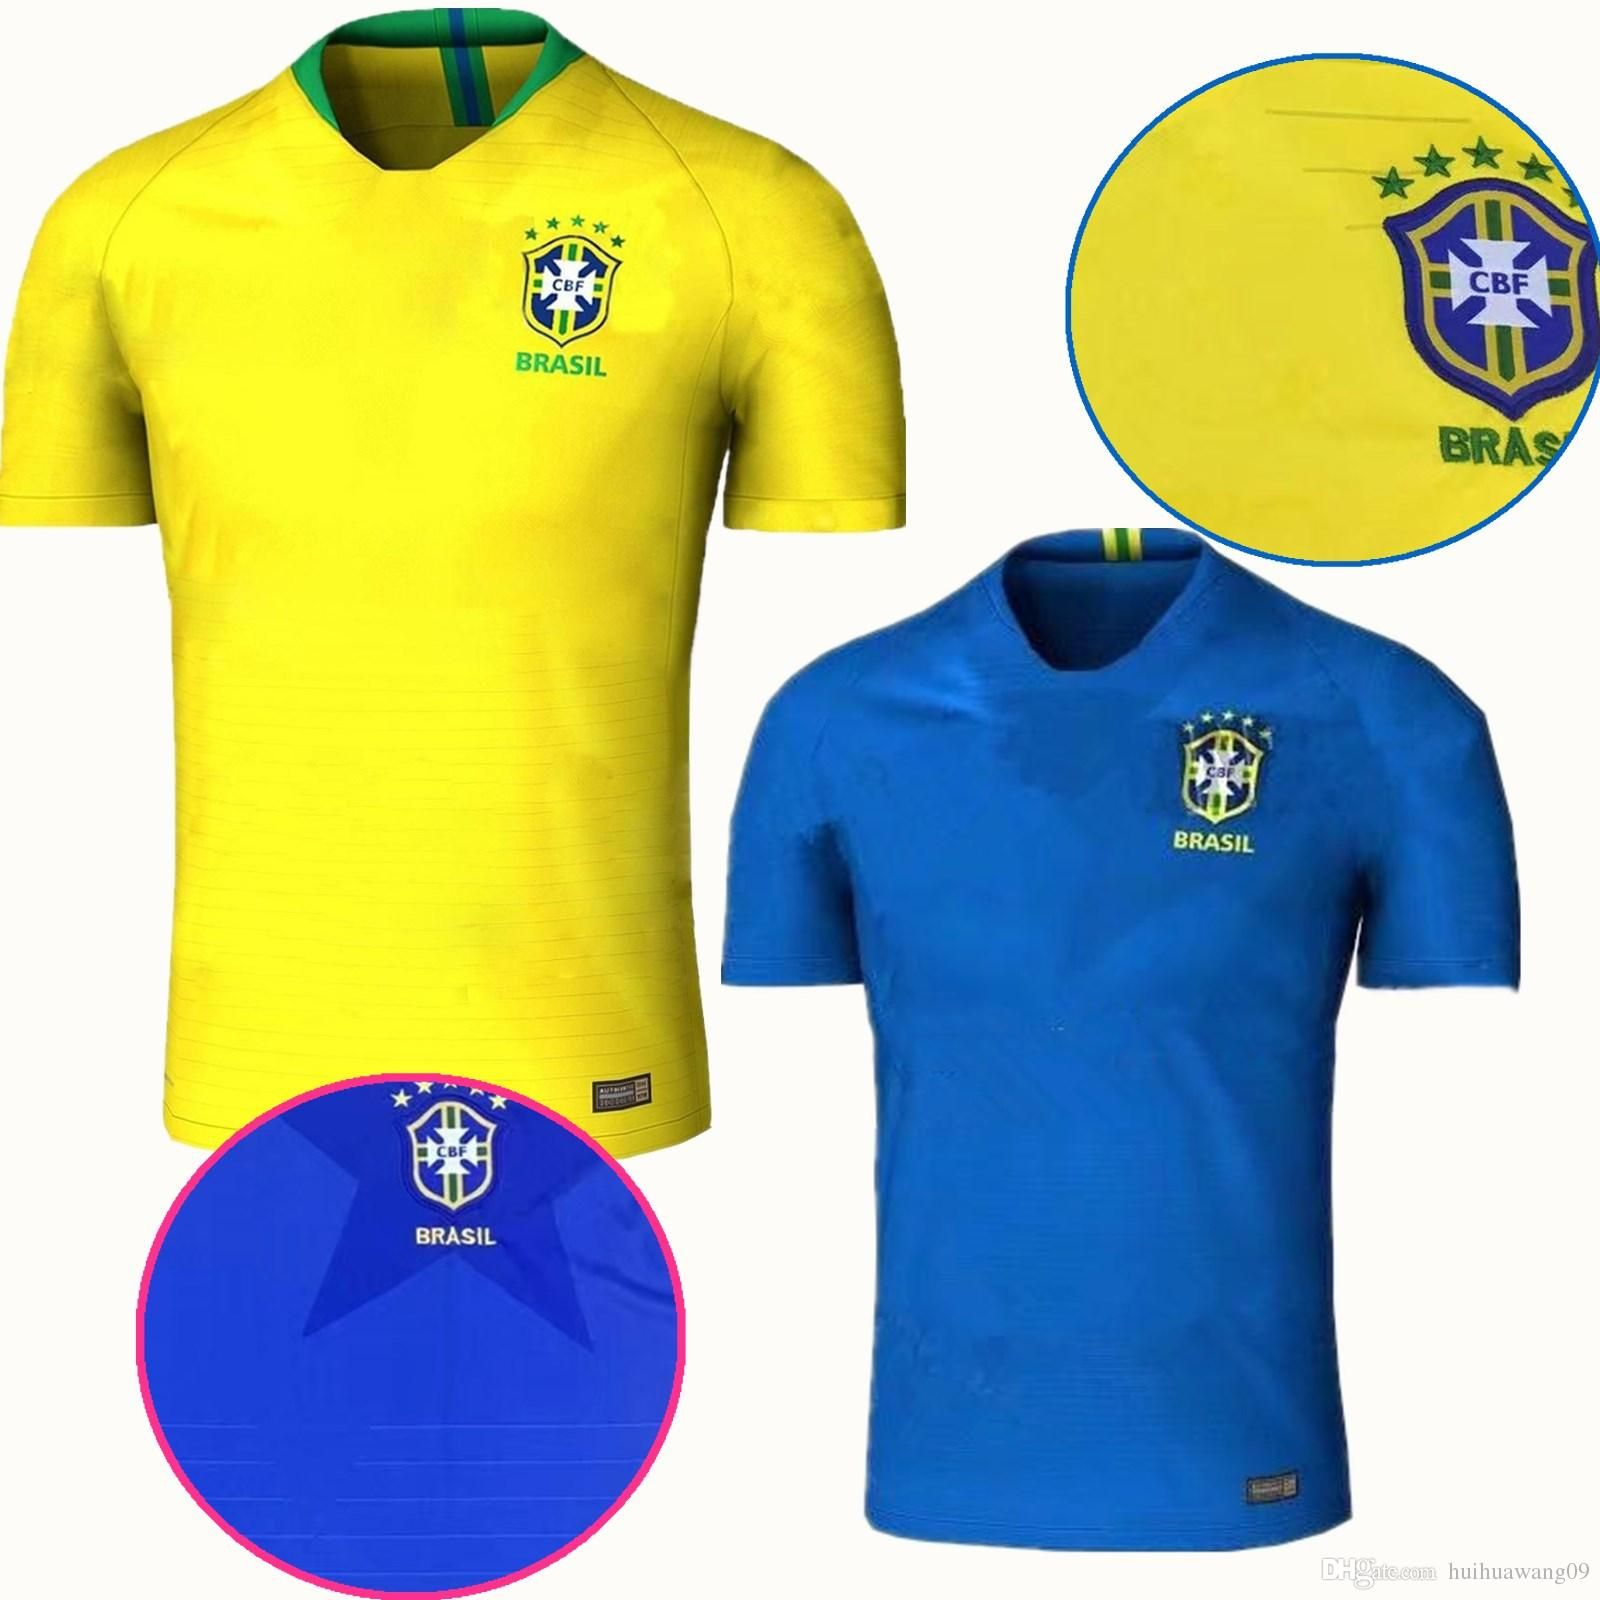 7add8b17a Brazil World Cup 2018 Jersey   Possible Lineup  FifaWorldcup2018  Brazil   Squad  Logo  Fifa2018  Rossia2018  Worldcup